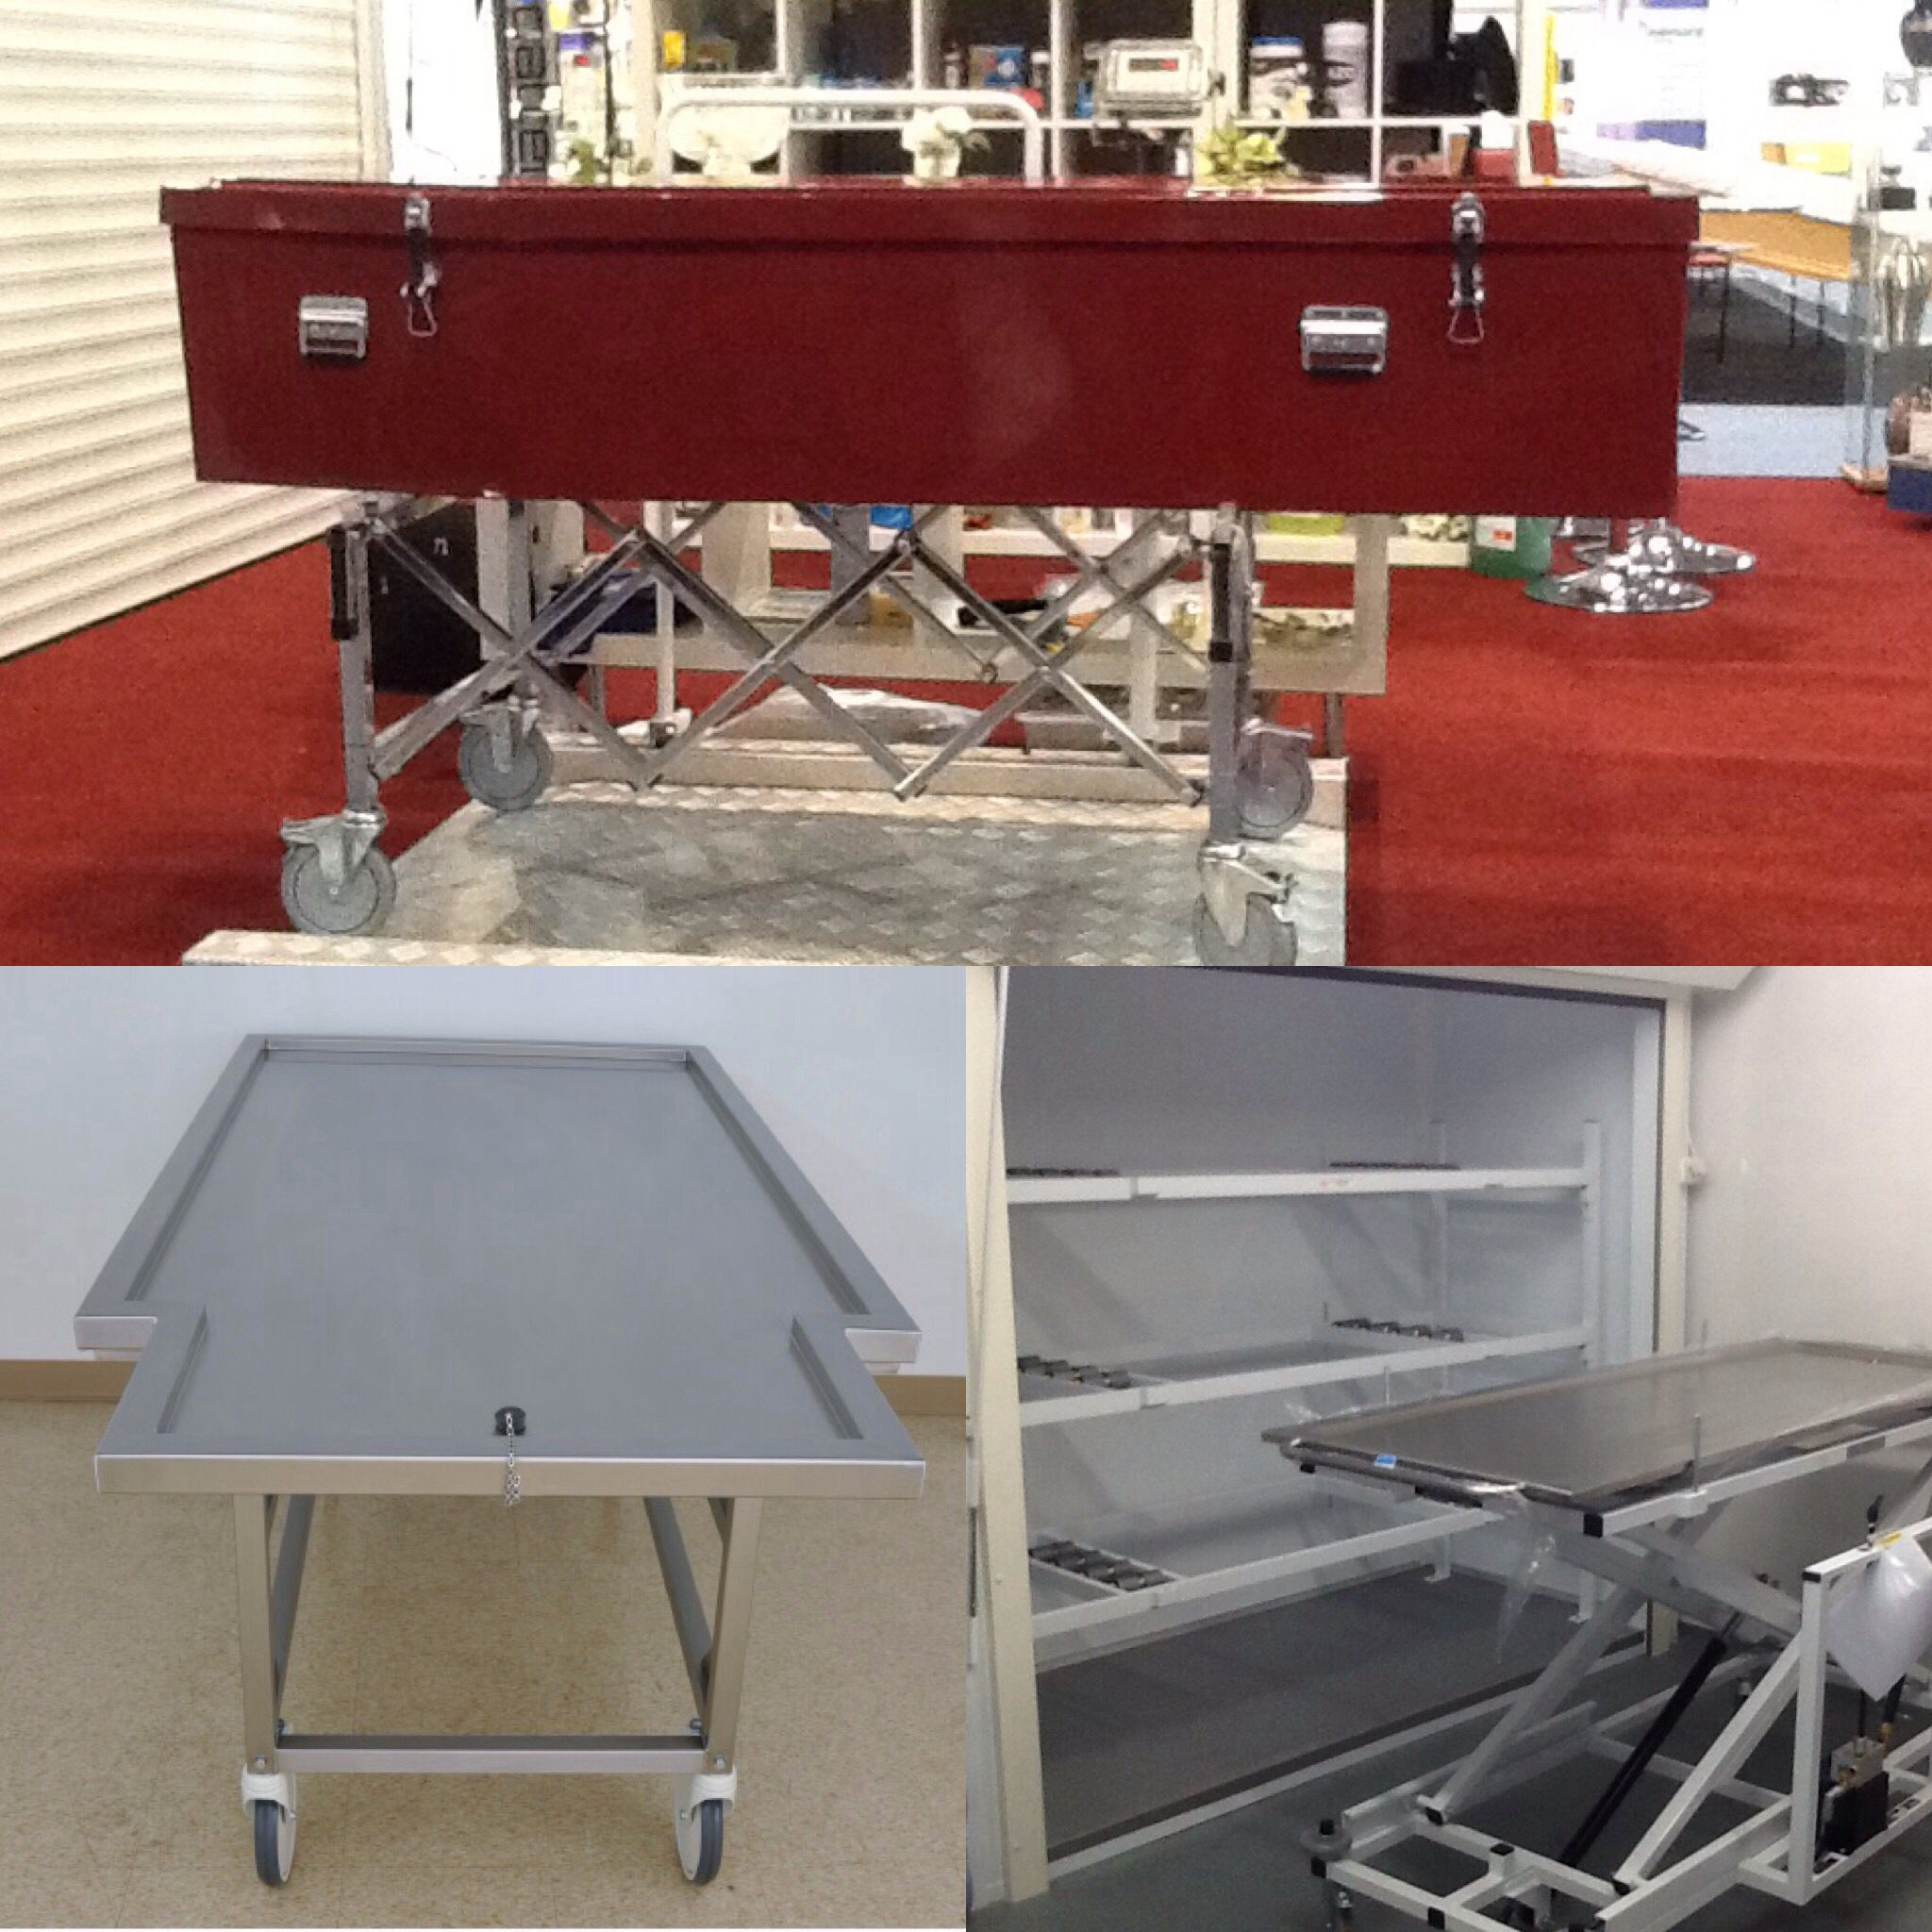 Removal shells and fibreglass coffins for #coroners removals